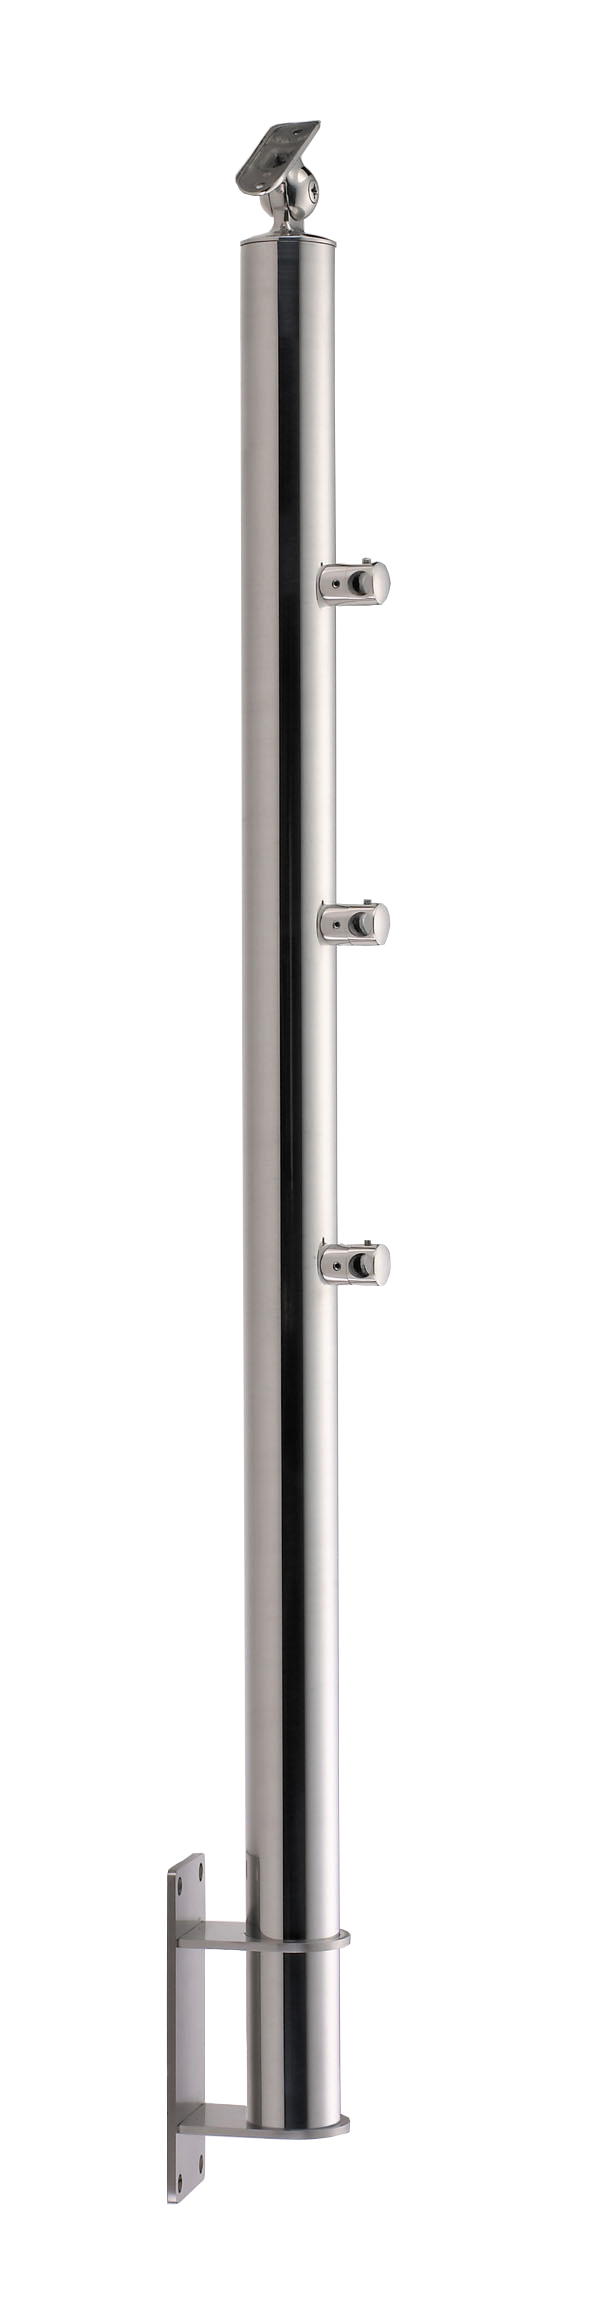 Stainless Steel Balustrade Posts - Tubular - SS:2020359A